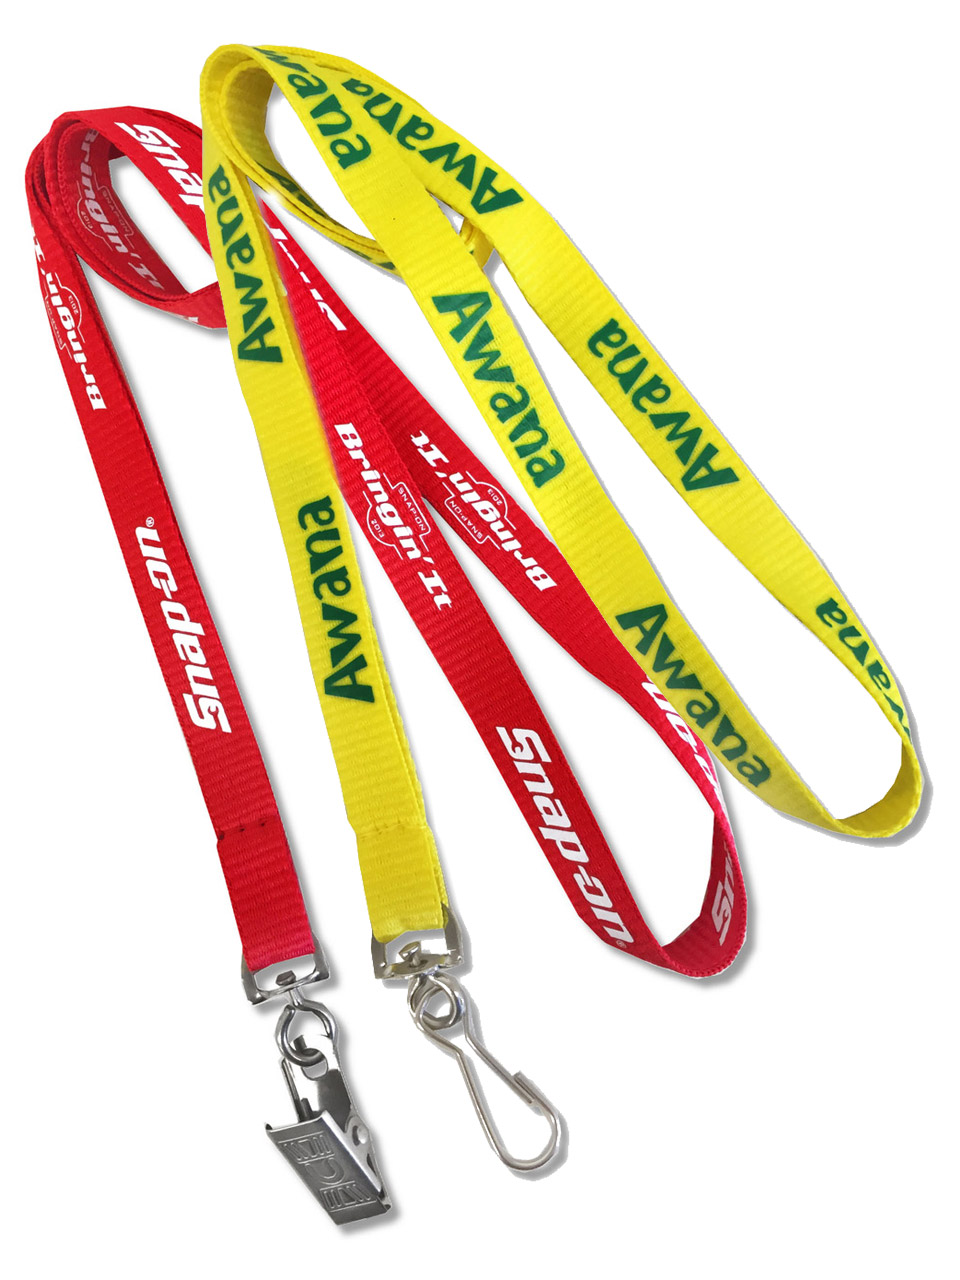 the lanyard essay Poetry analysis: the lanyard essay 637 words | 3 pages rough draft we have all had those memorable moments that send us back in time a song on the radio, the smell of.